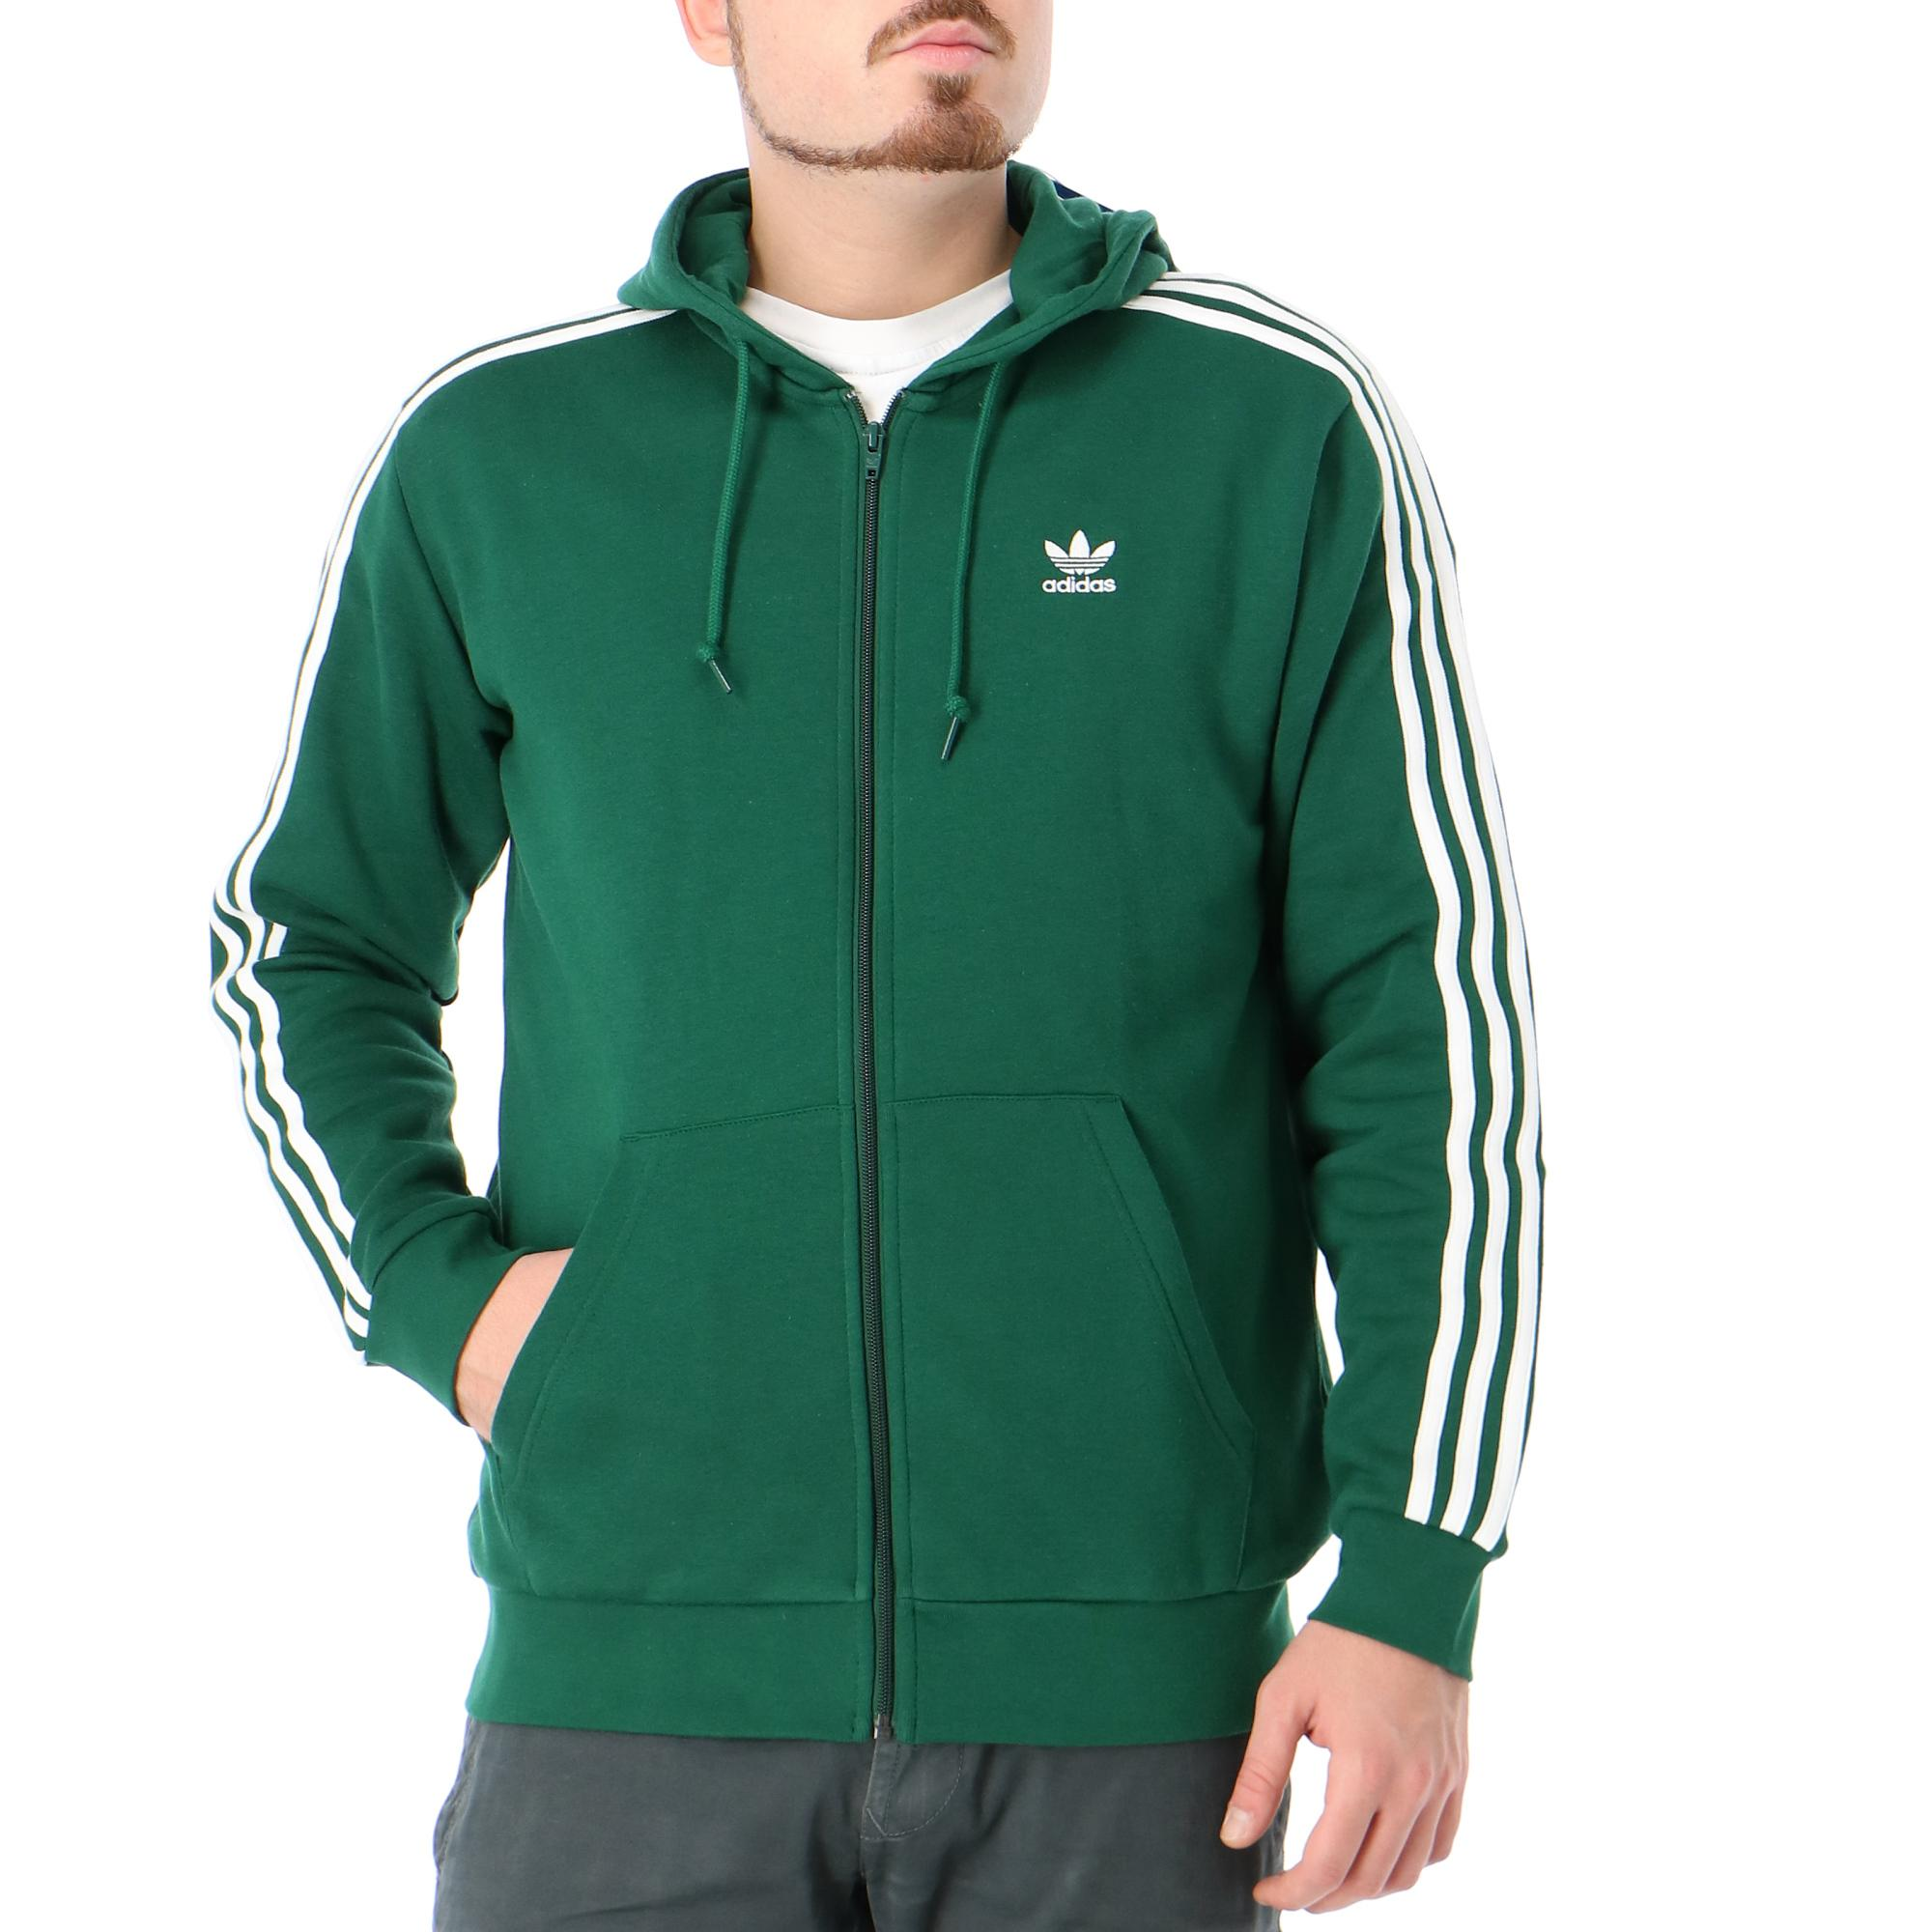 Adidas 3-stripes Fz DARK GREEN